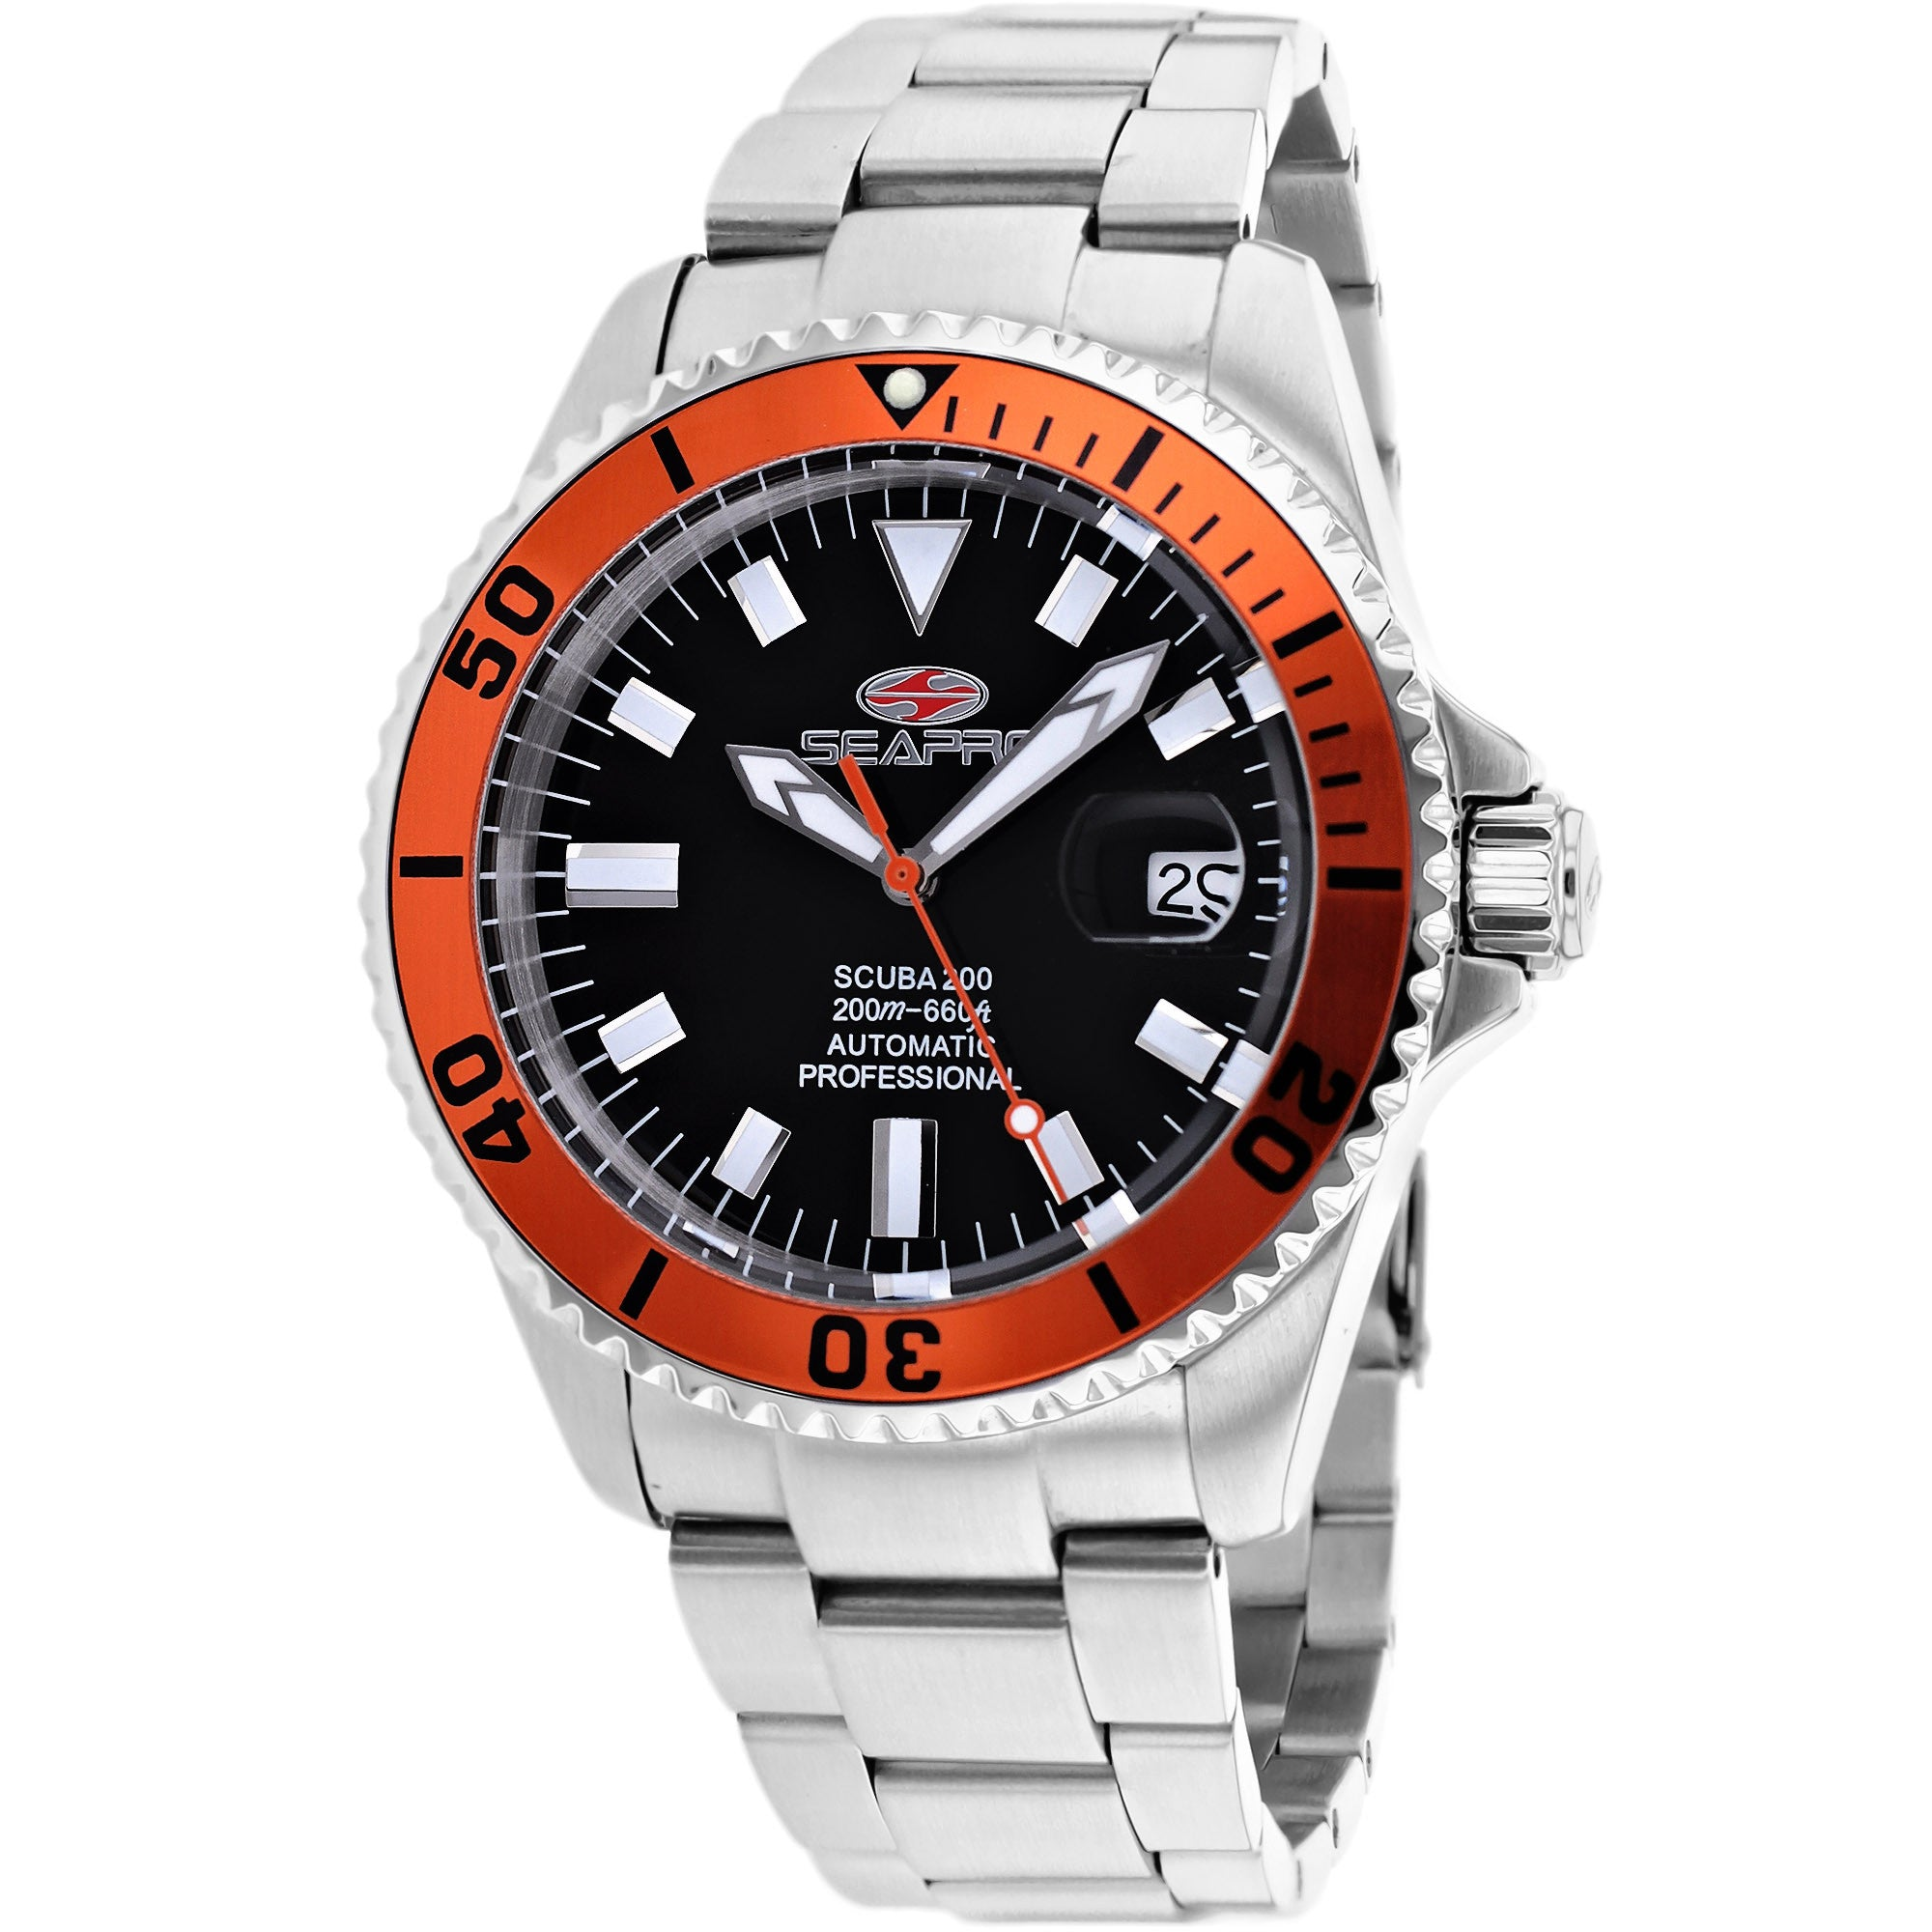 history luminous dial scuba all bezel diver dive screw in watches revolution elements directional its to uni and the watch also safe addition featured milestones a crown trademark maximum for